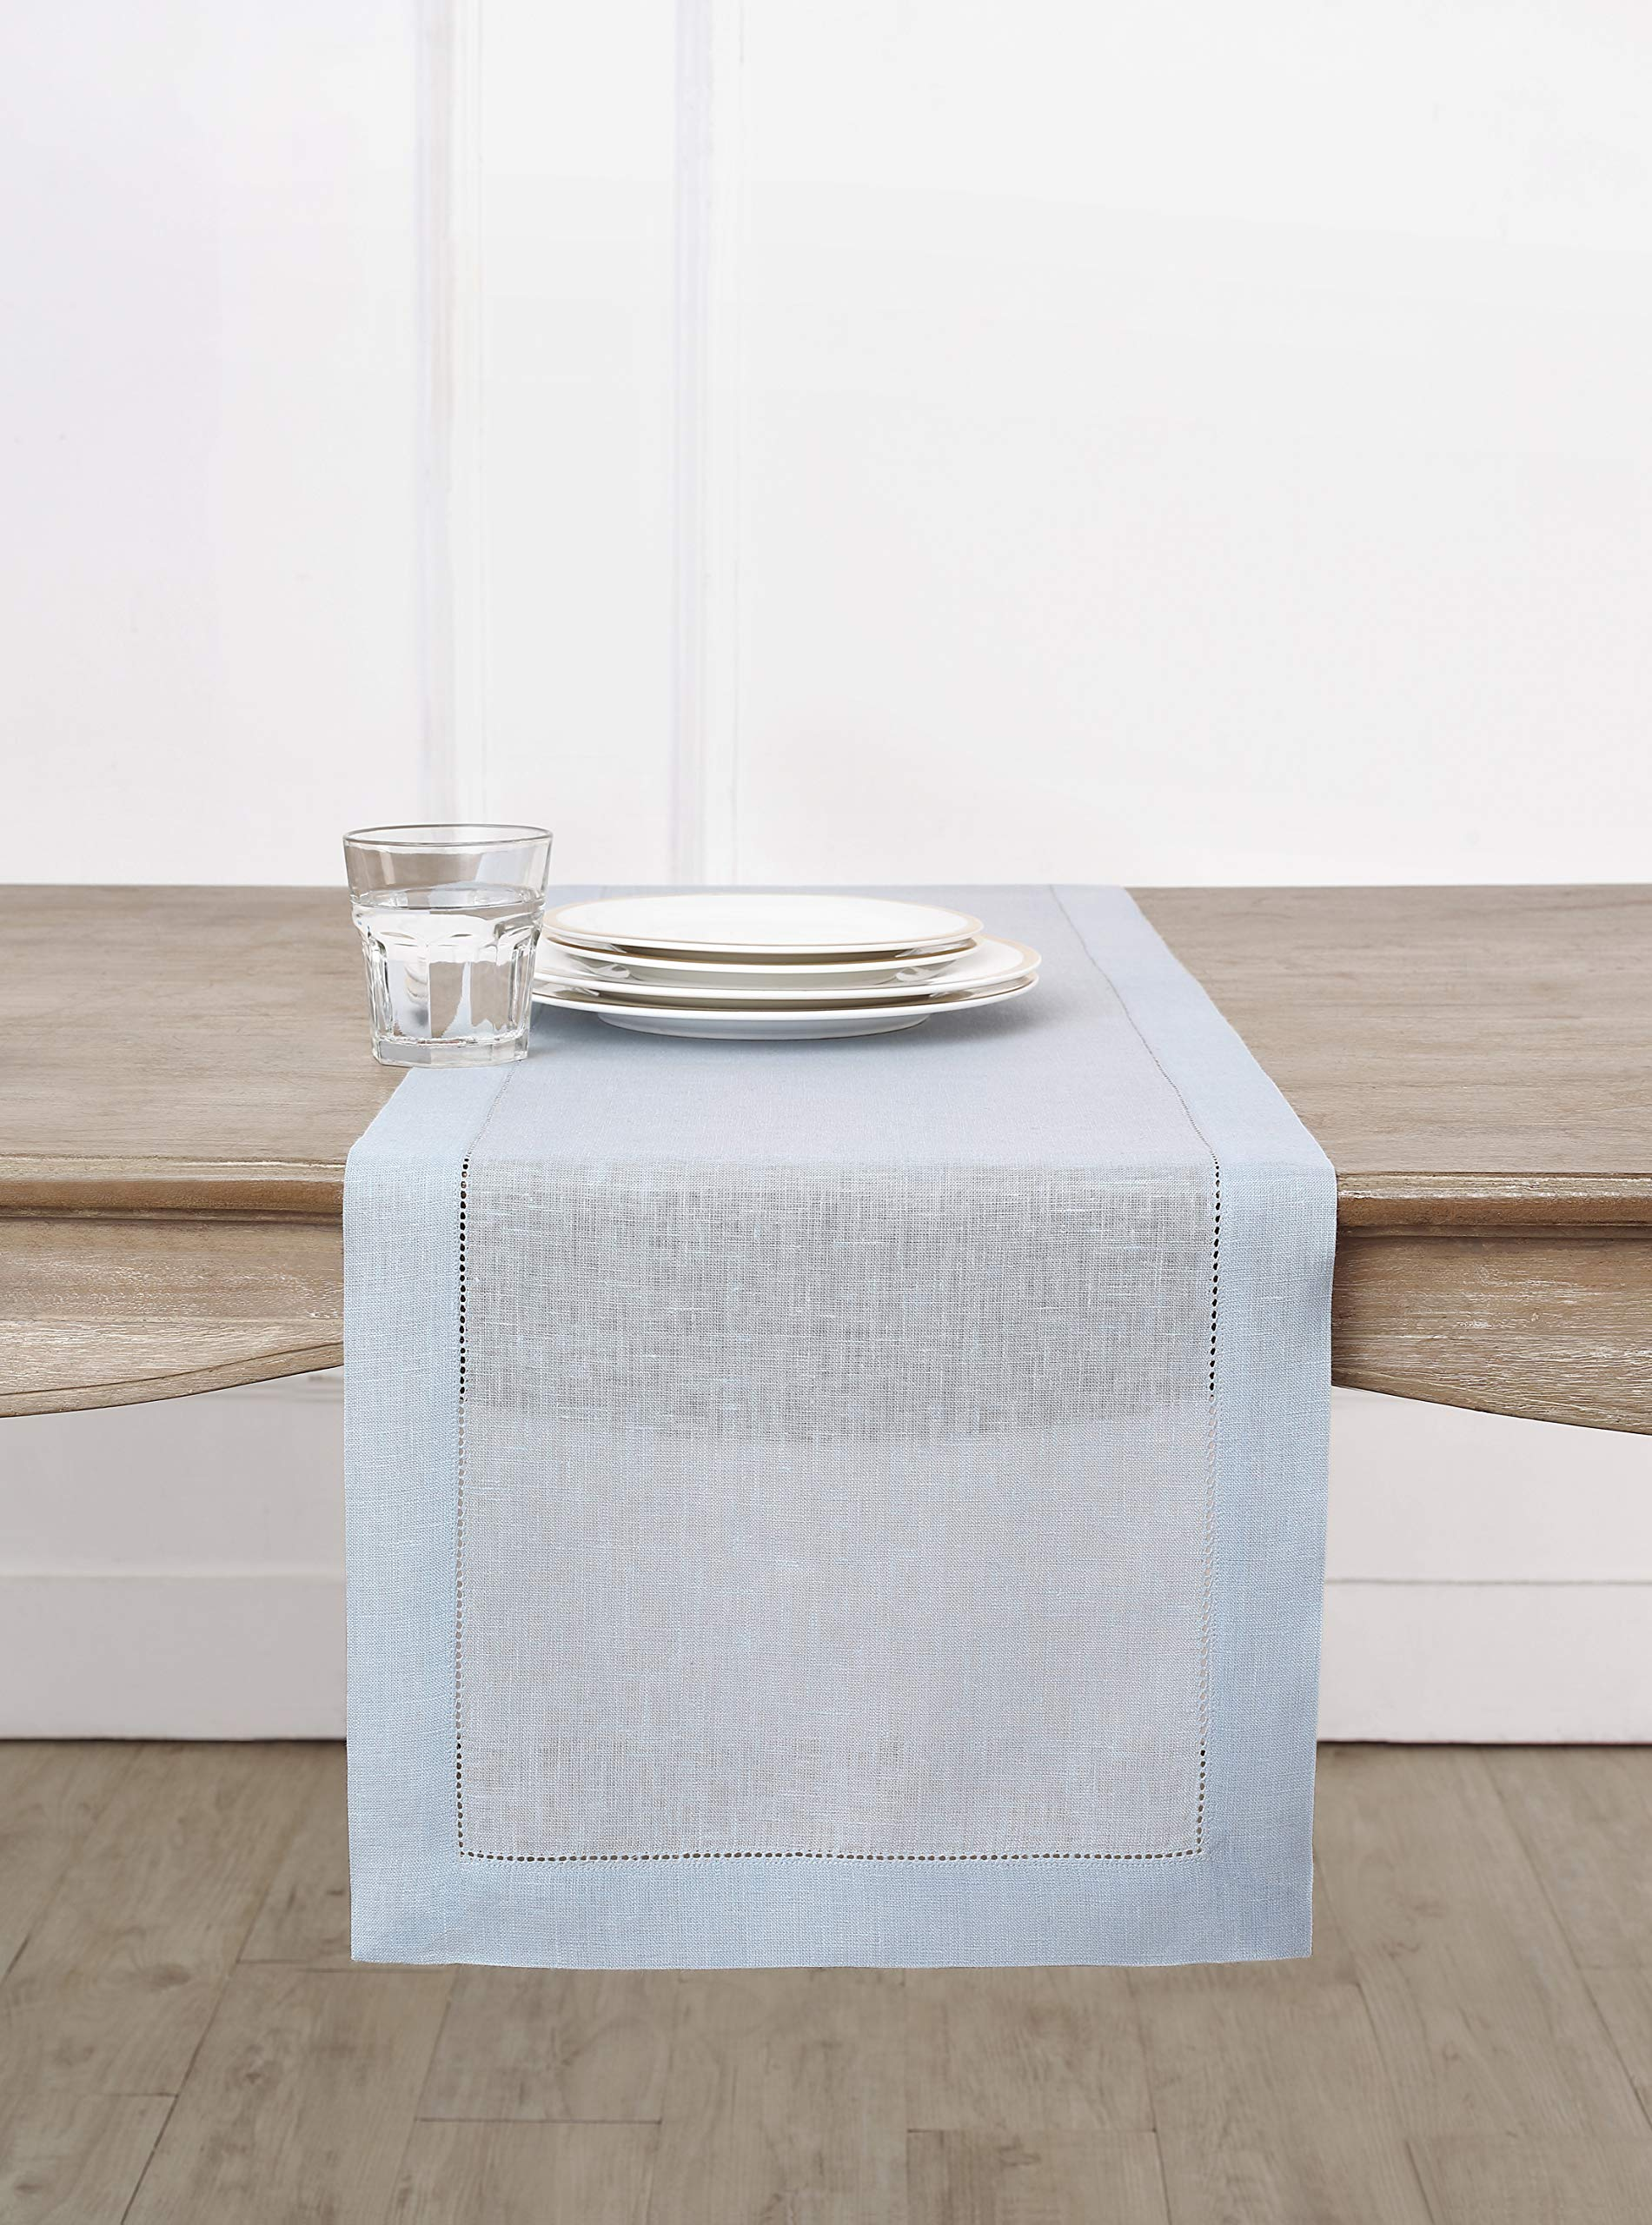 Solino Home Hemstitch Linen Table Runner - 14 x 120 Inch, Handcrafted from European Flax, Machine Washable Classic Hemstitch - Light Blue